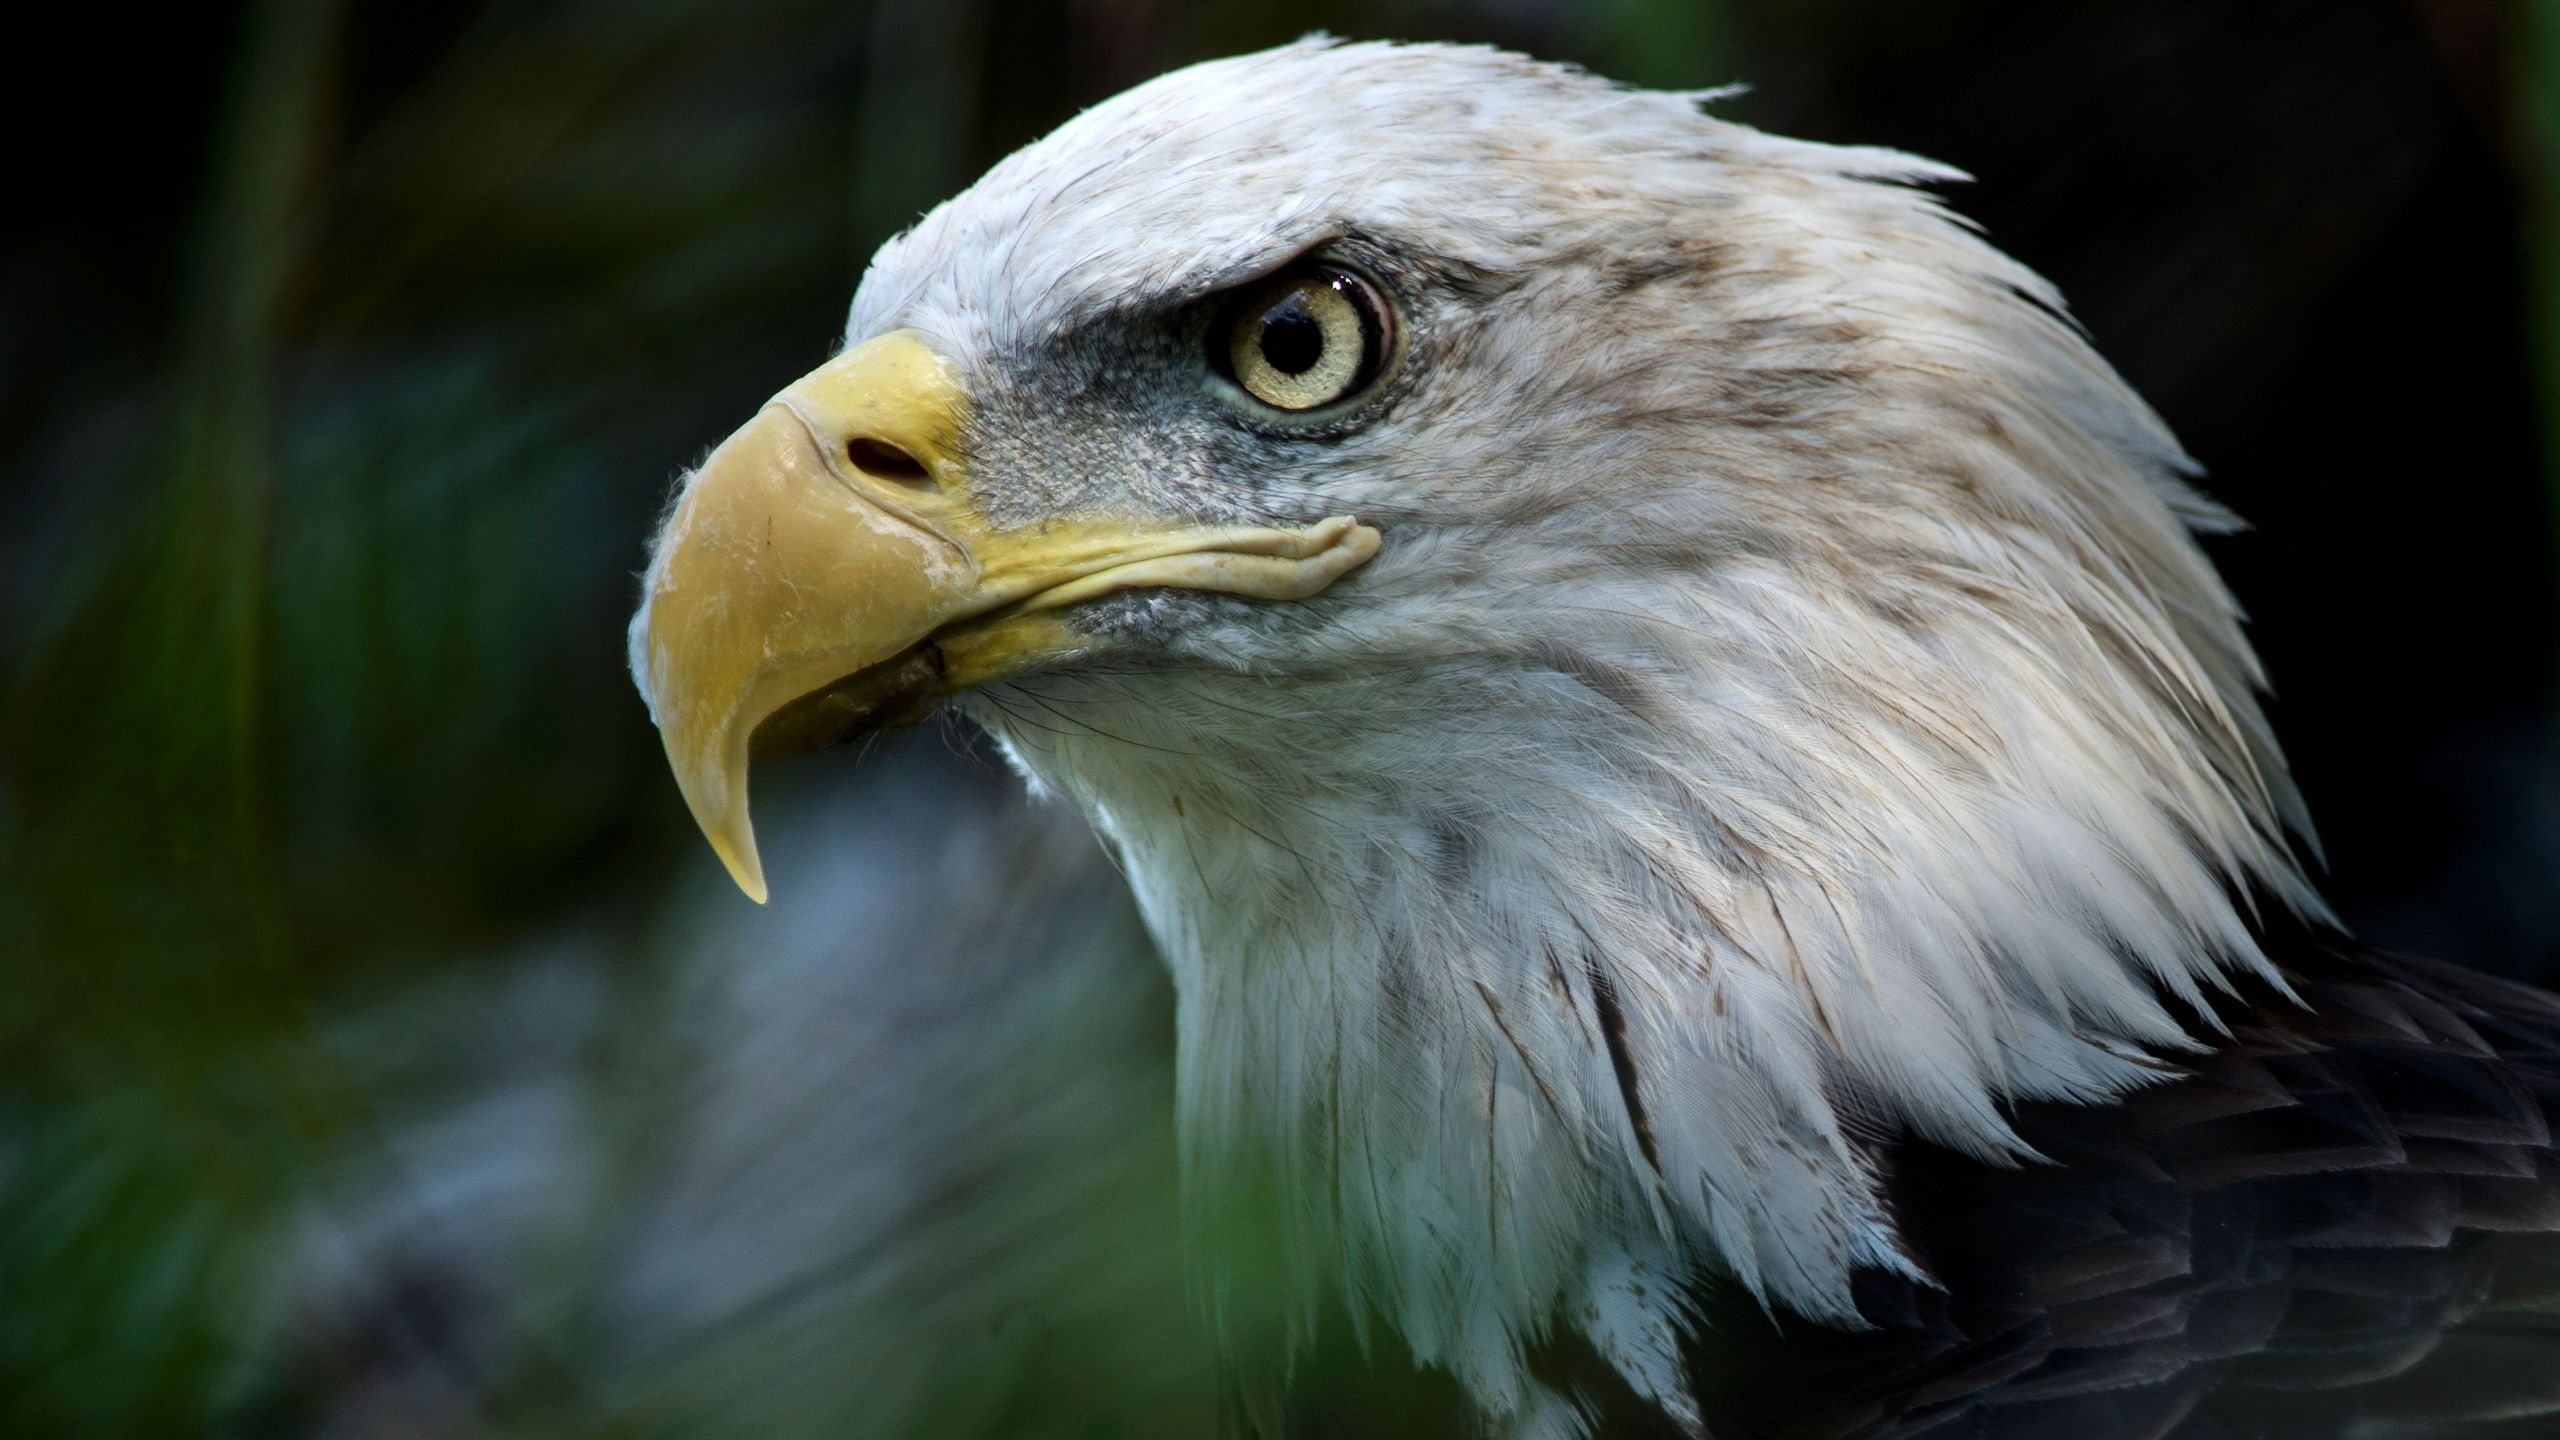 A bald eagle is seen along the American Trail at the Smithsonian National Zoo Aug. 11, 2016 in Washington, D.C. (Credit: BRENDAN SMIALOWSKI/AFP/Getty Images)